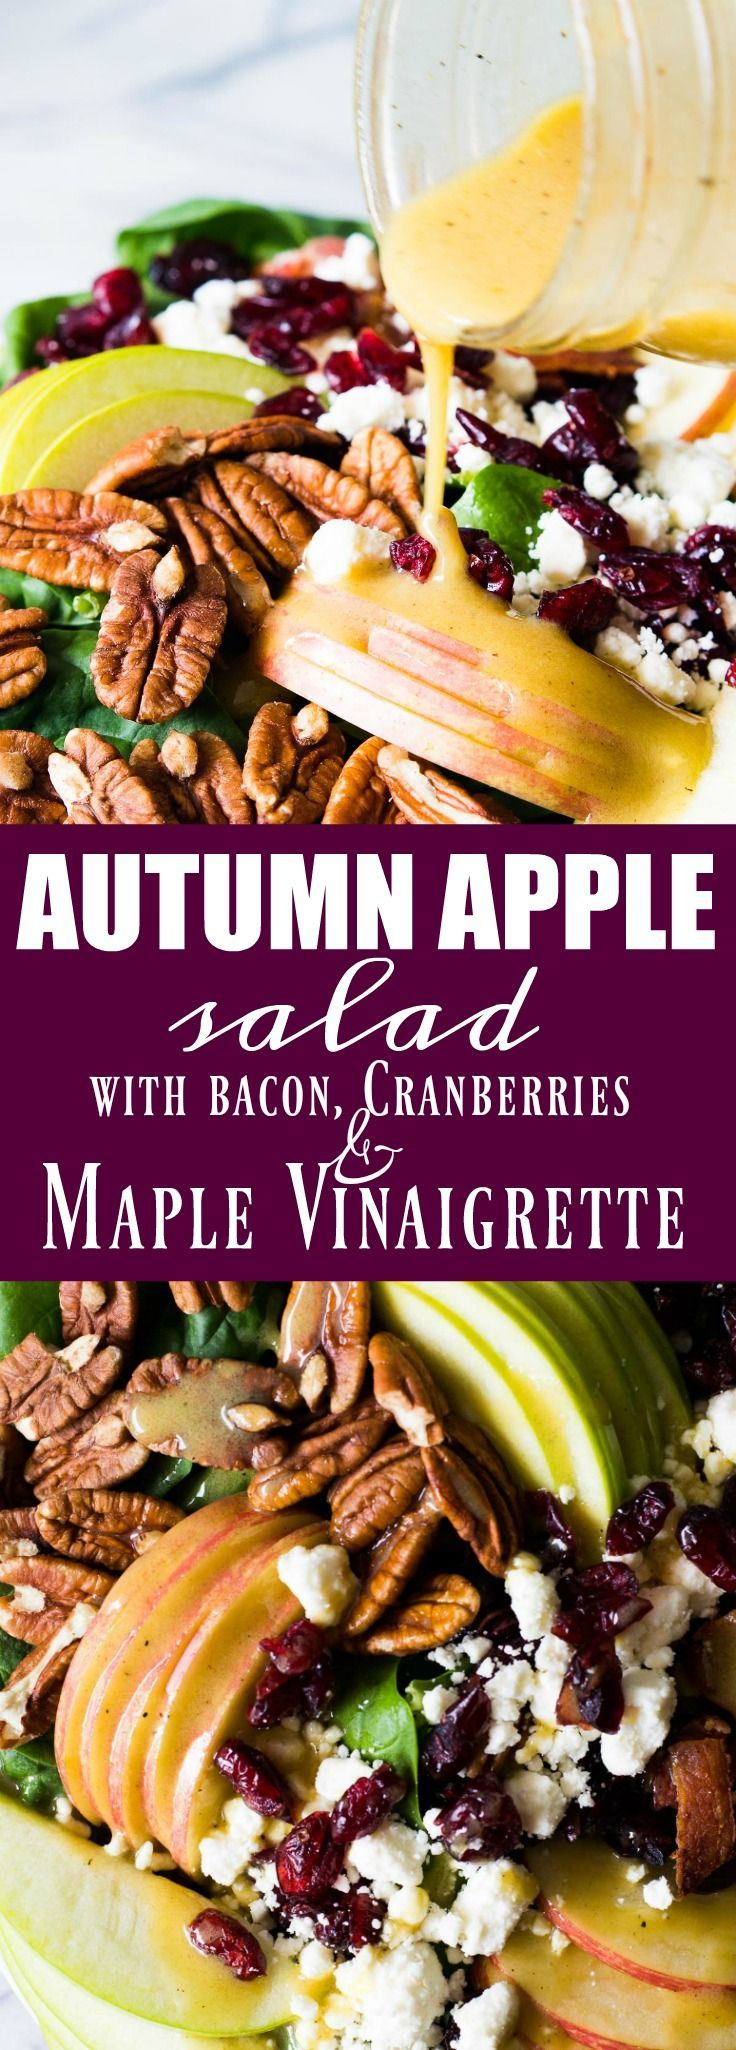 Autumn Apple Salad with a Maple Vinaigrette